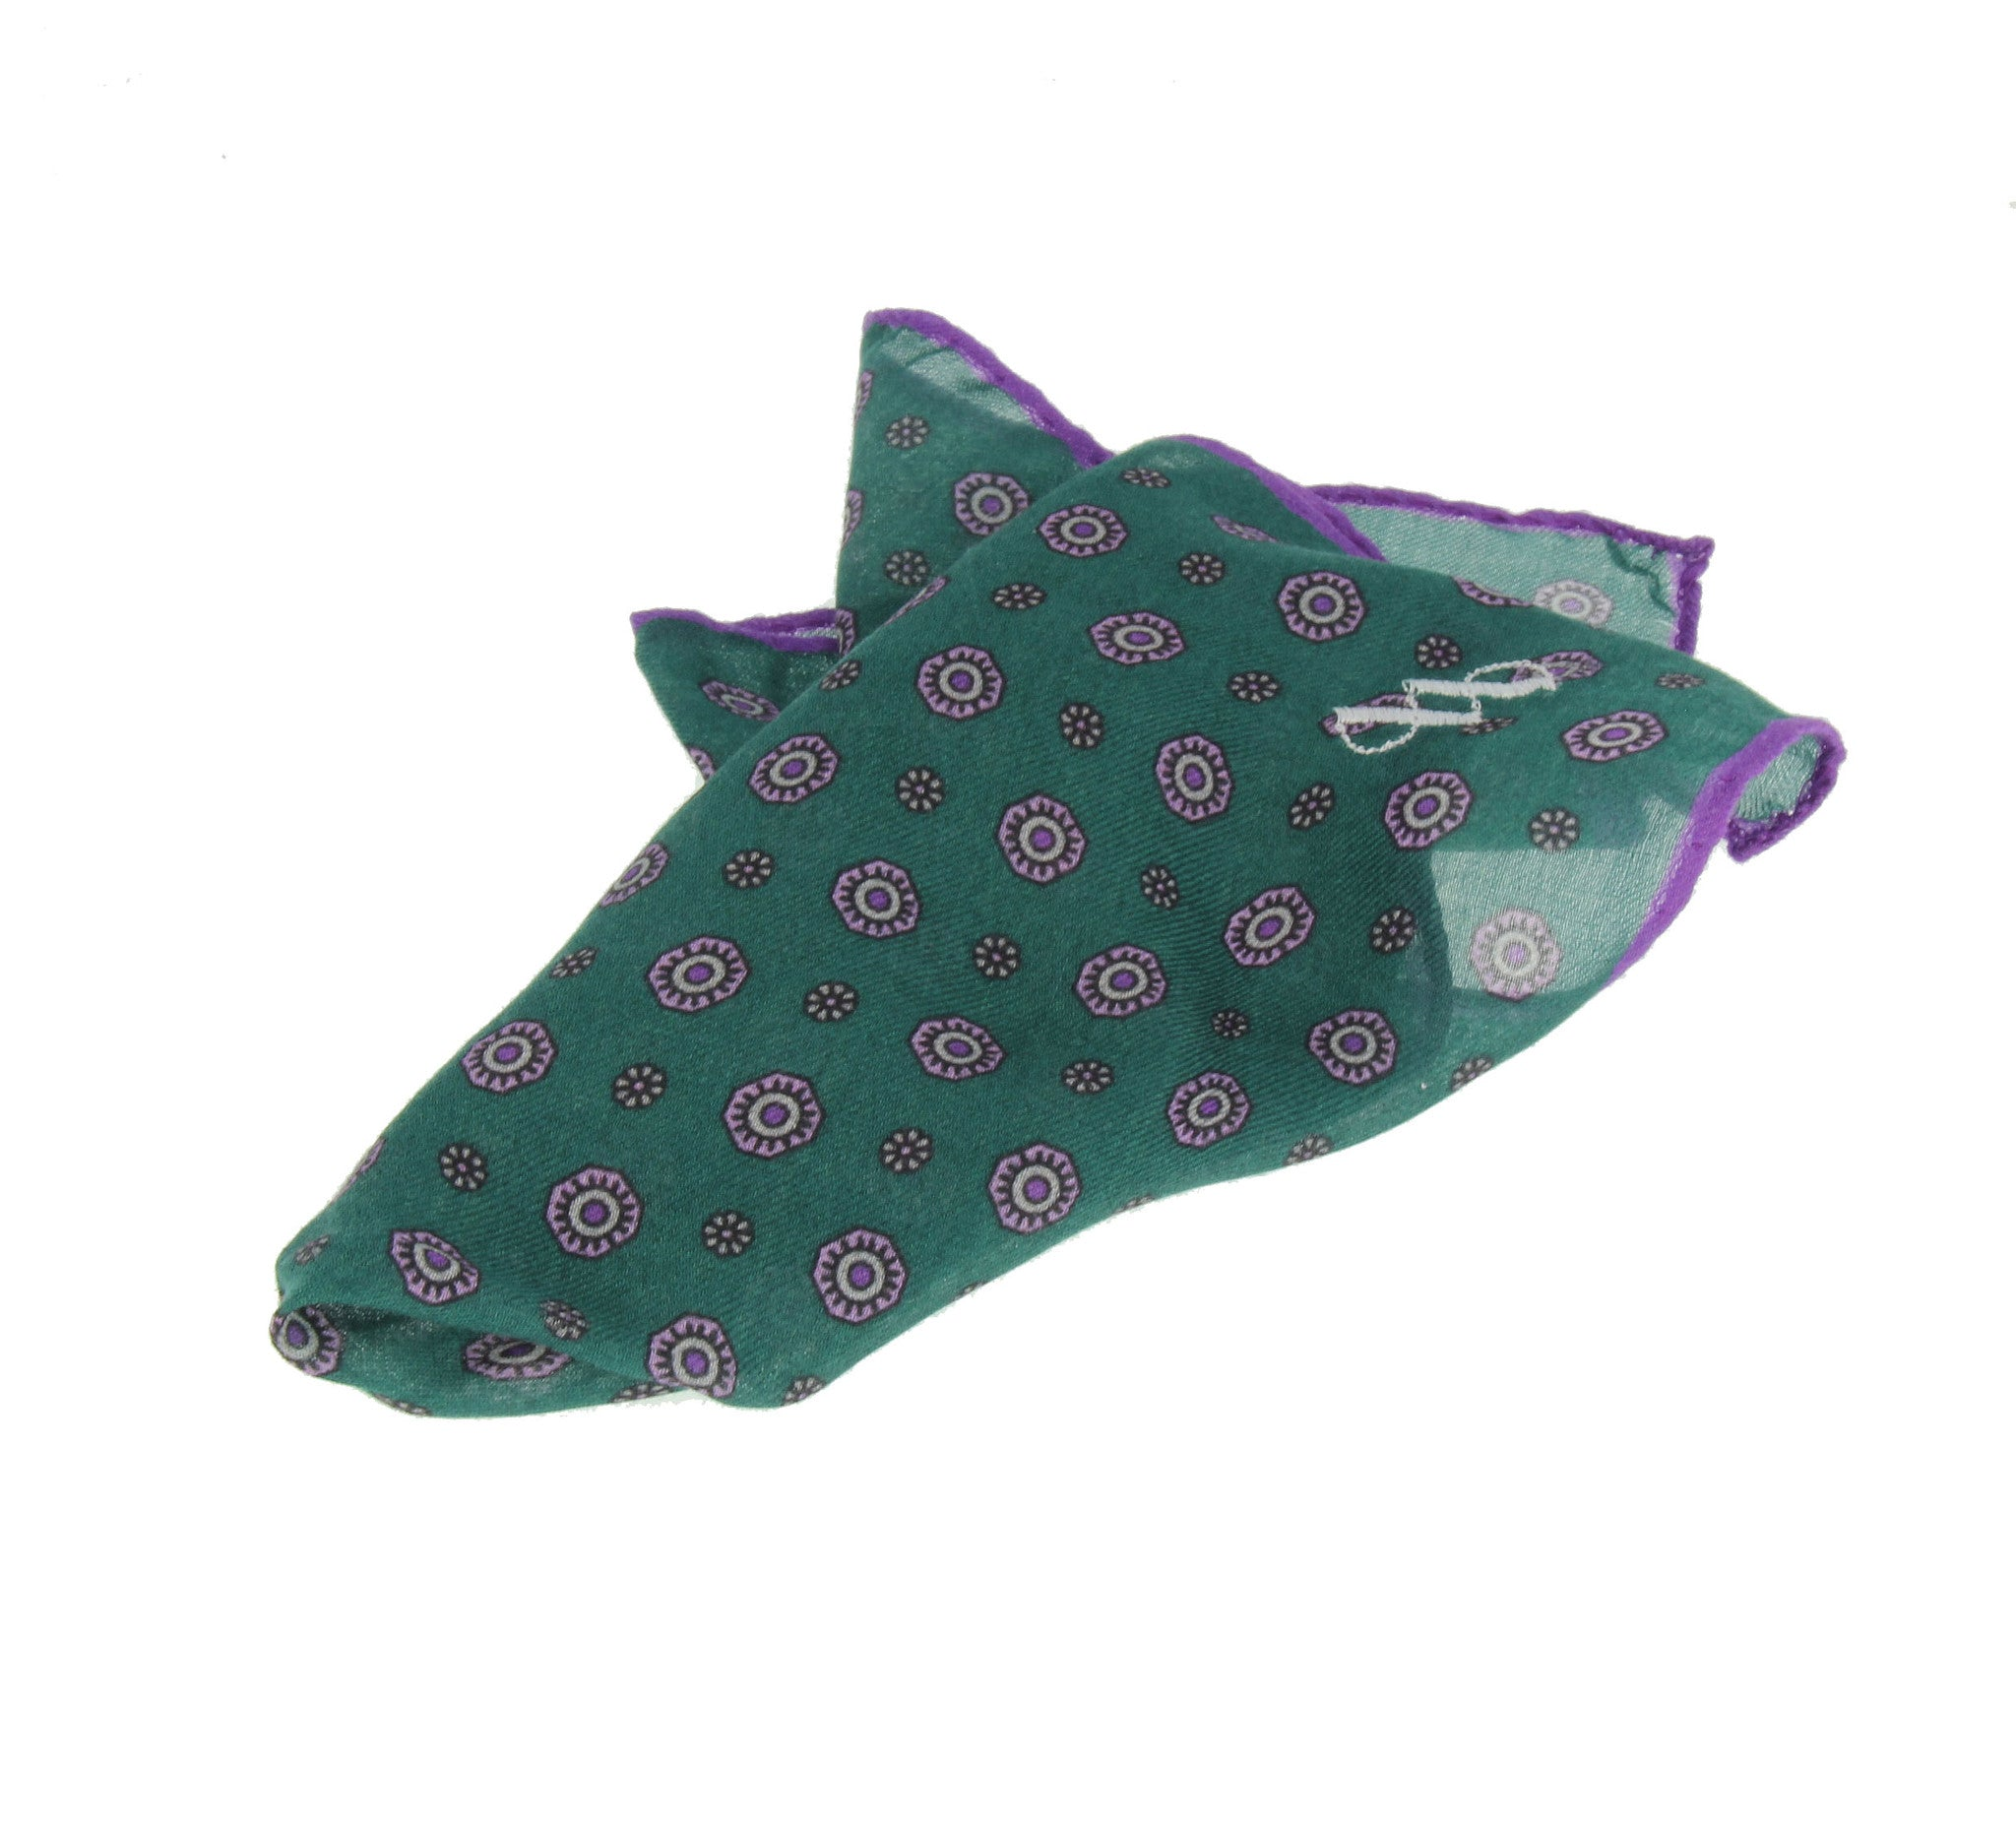 Green modal and cachmere pocket square with flowers pattern